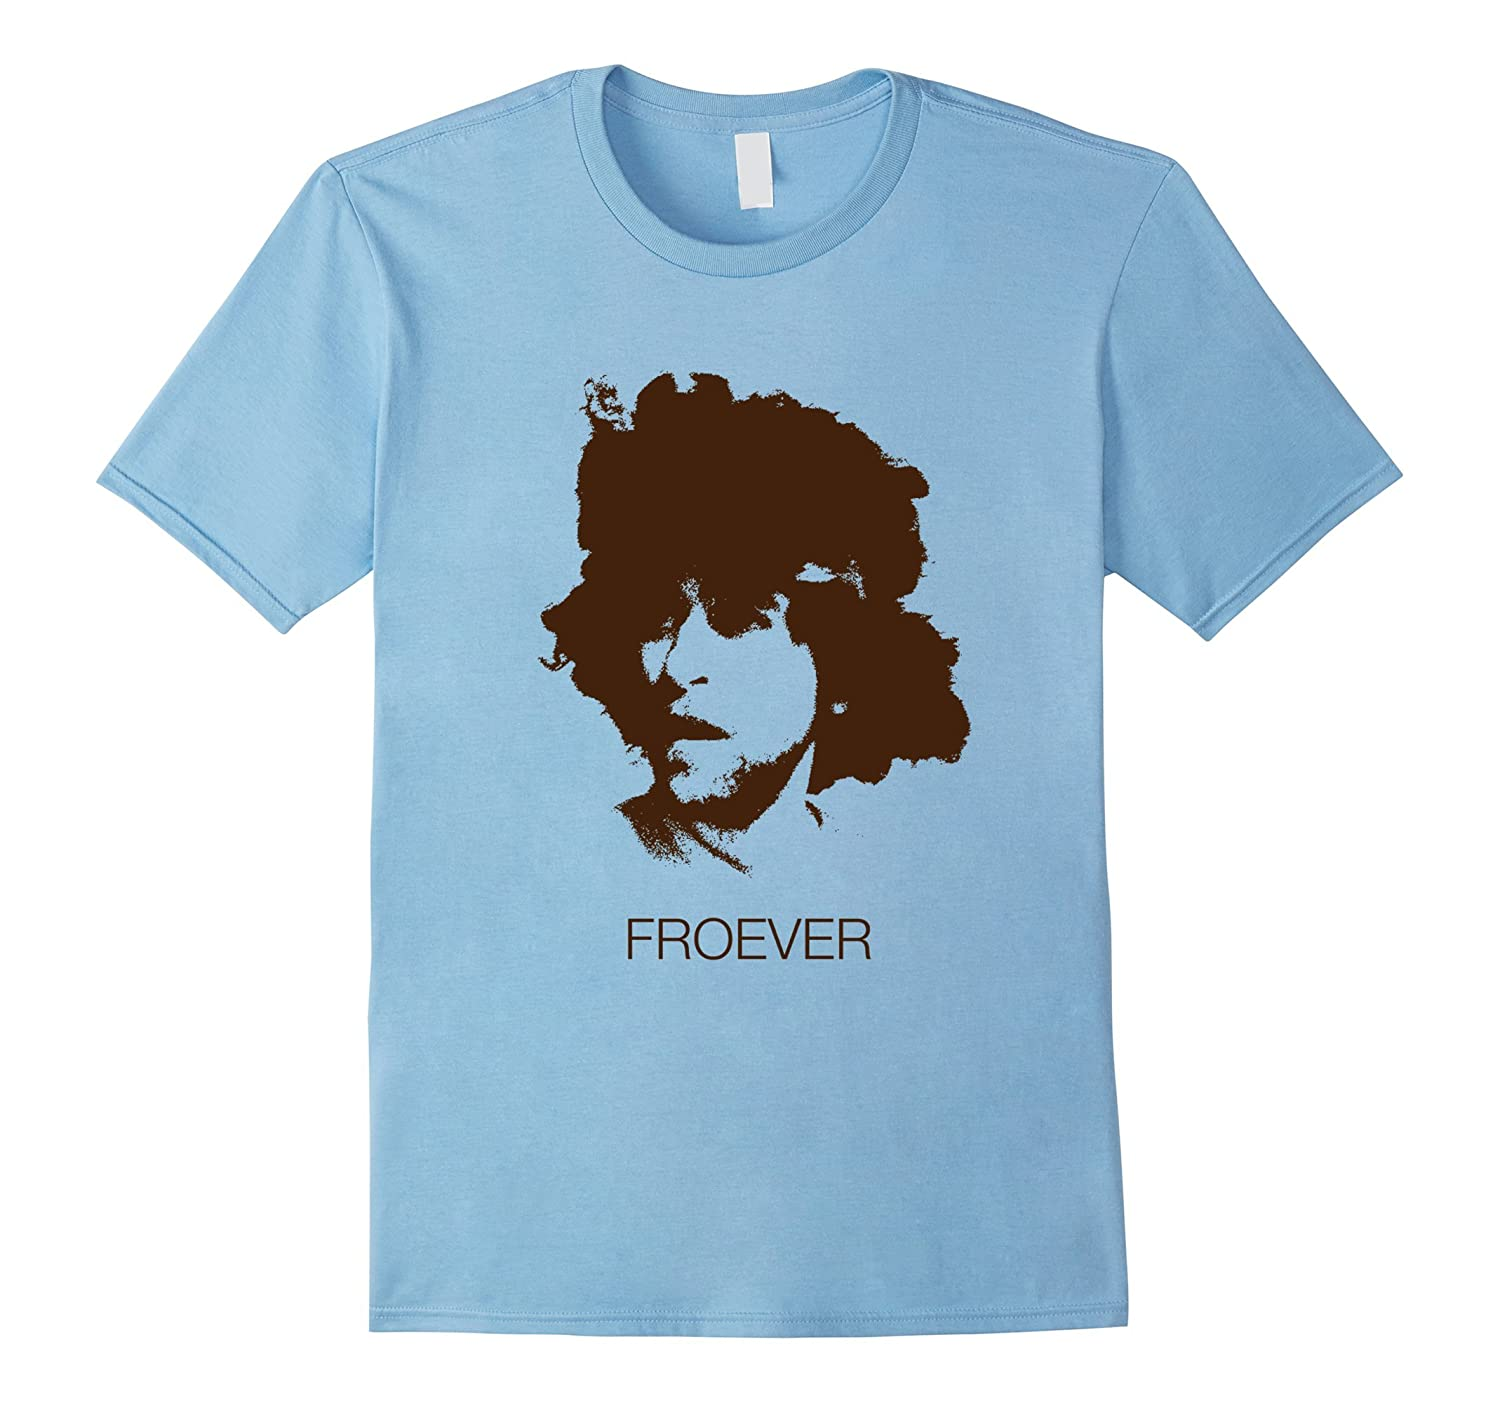 Froever - Funny Epic 70s Tennis Retro Vintage Afro T-Shirt-T-Shirt